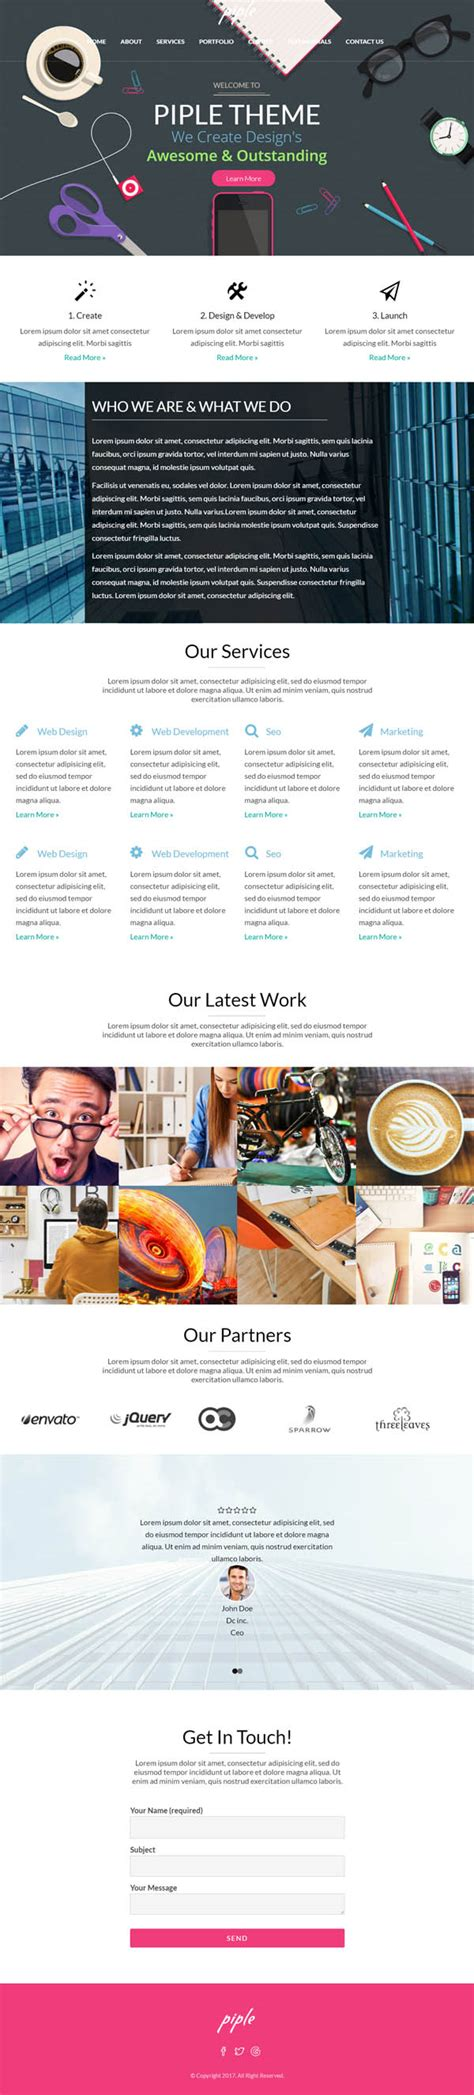 Piple Search Piple Creative Multipurpose Theme Themes Design